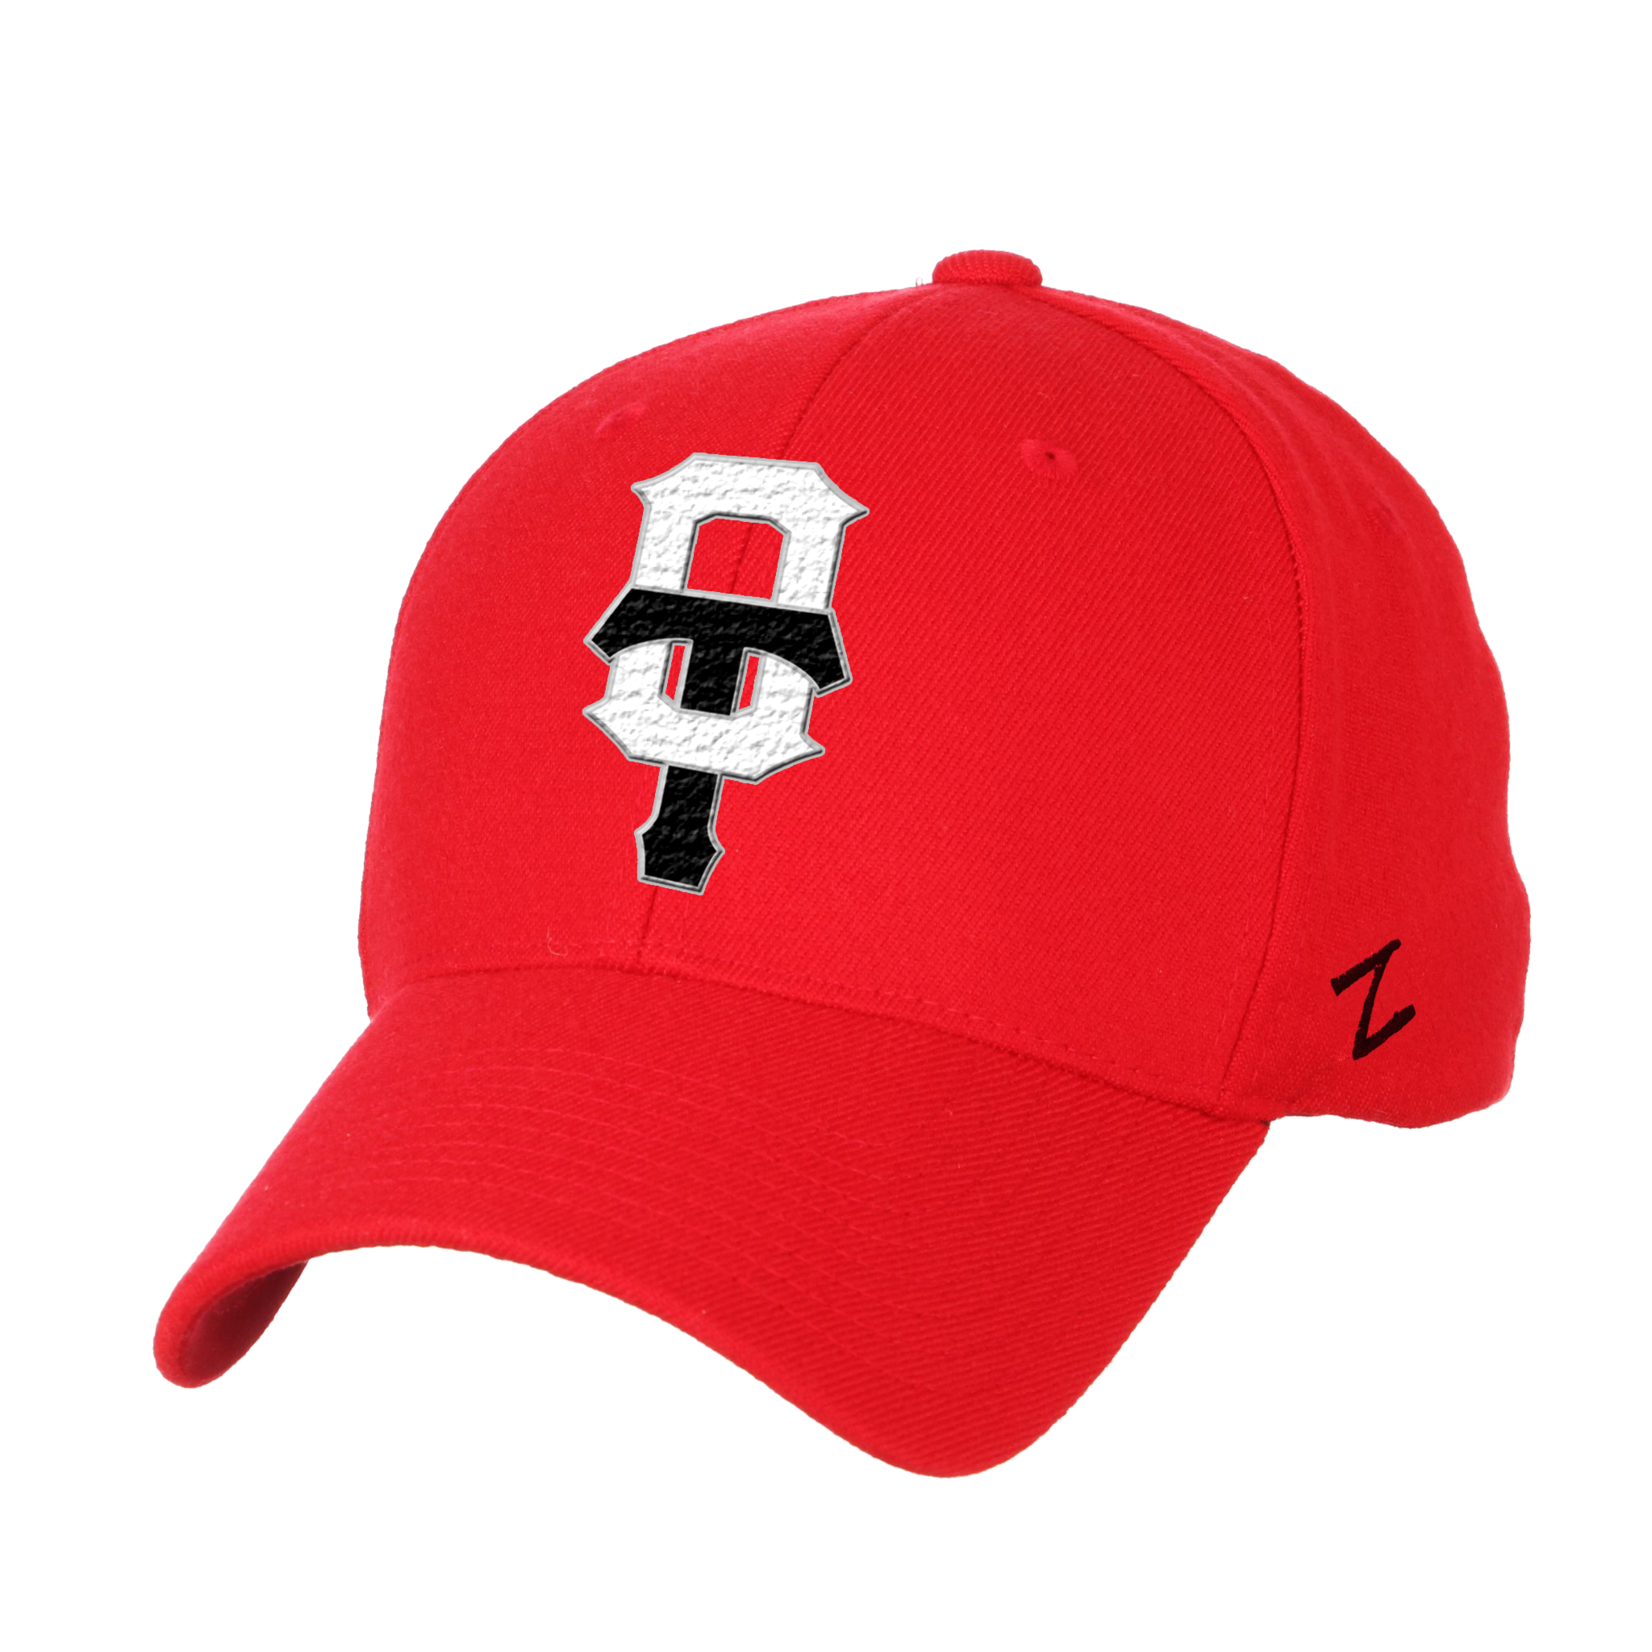 ZEPHYR Official On-Field Home Cap